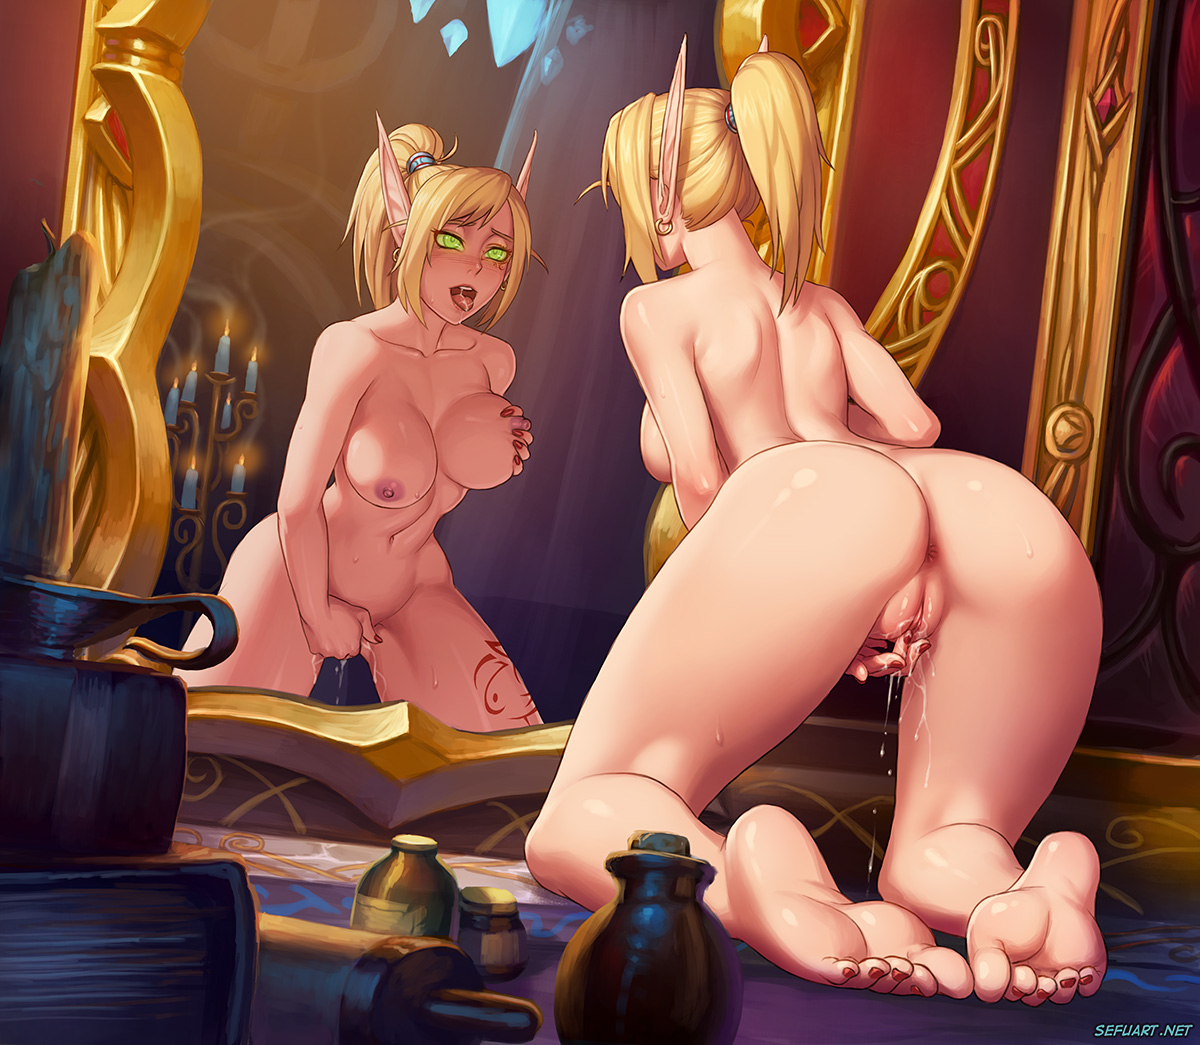 World of warcraft blood elves sex exposed image